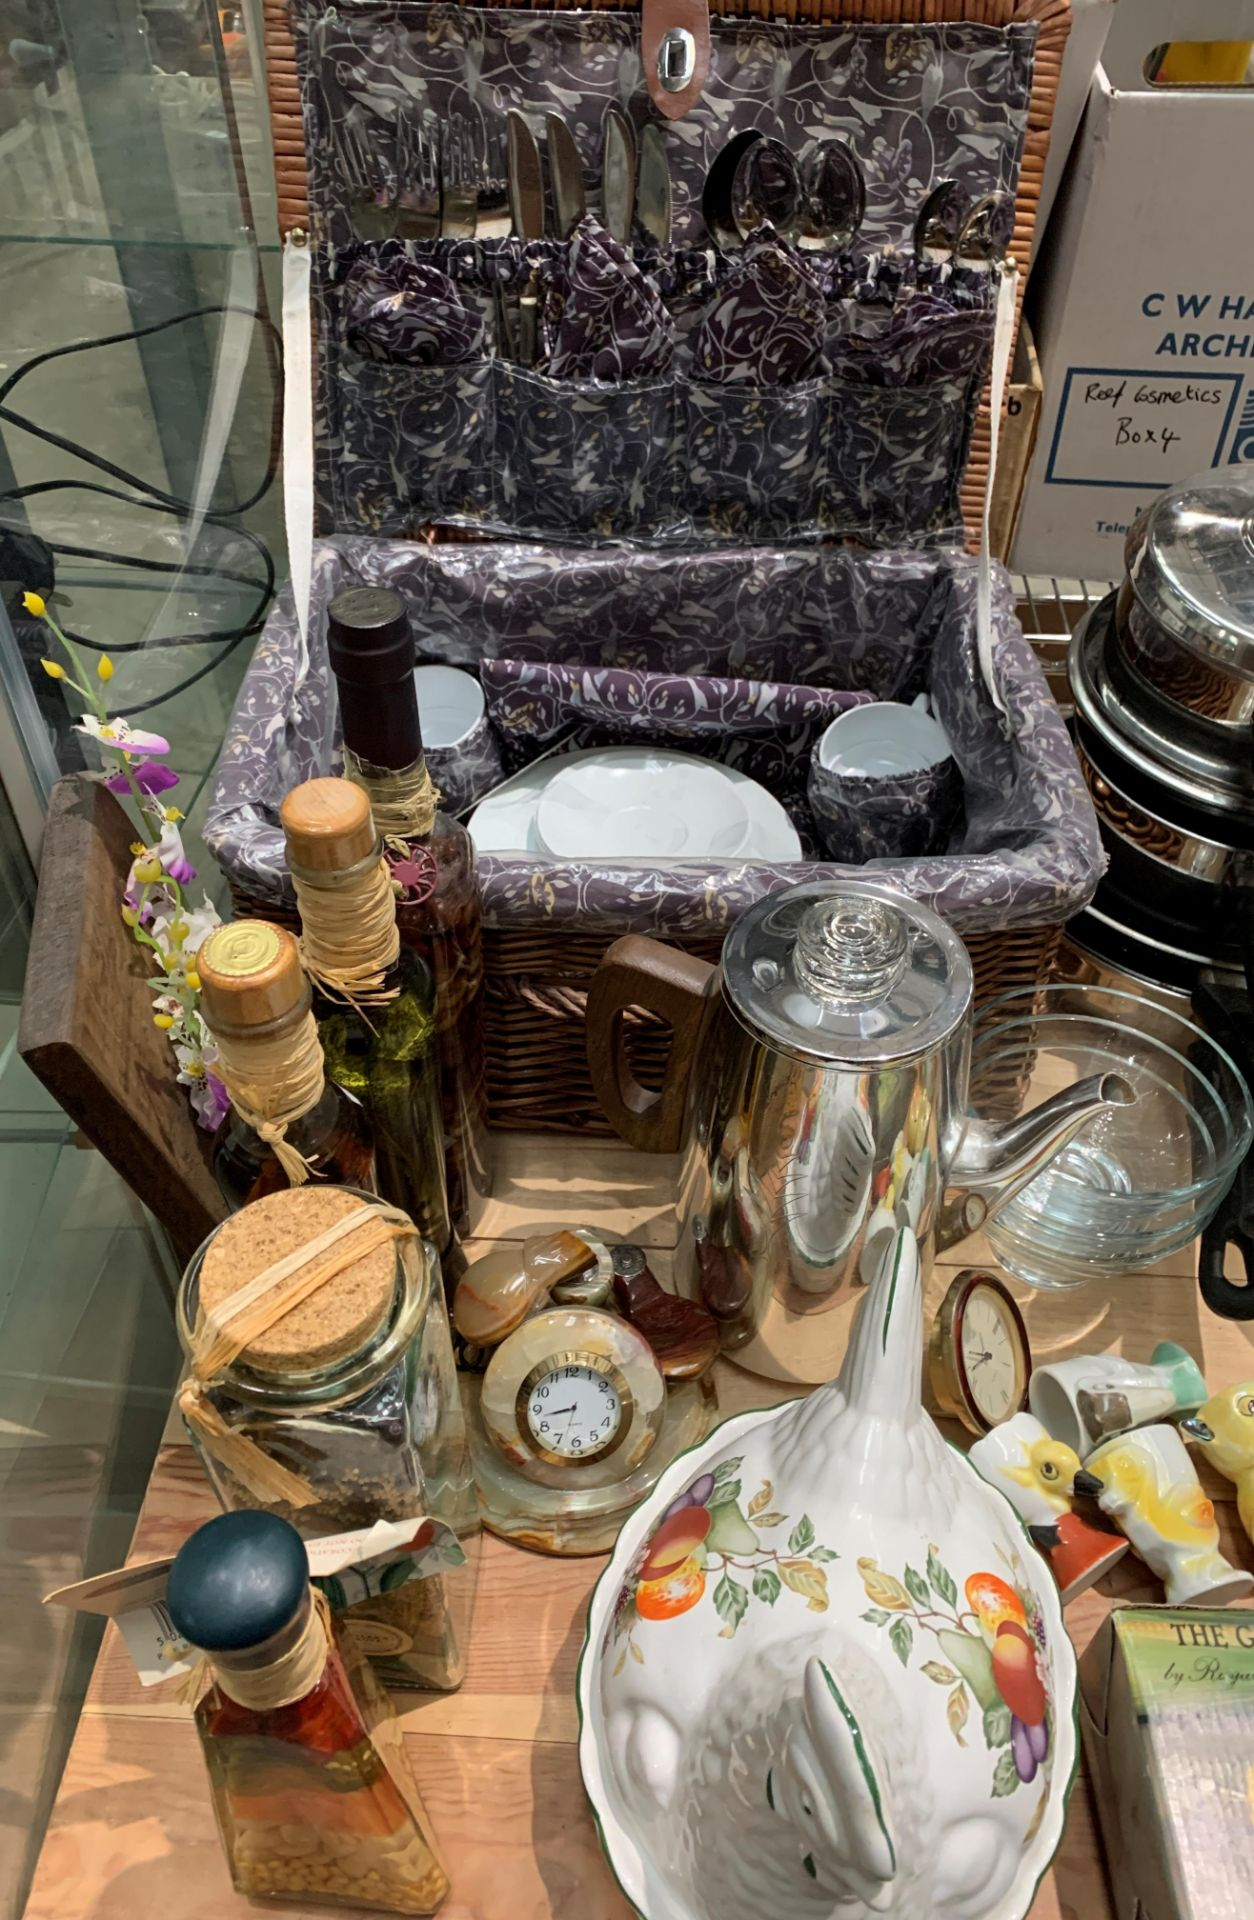 Contents to part table top - wicker picnic basket and part contents - pans, ceramic hen, - Image 2 of 3